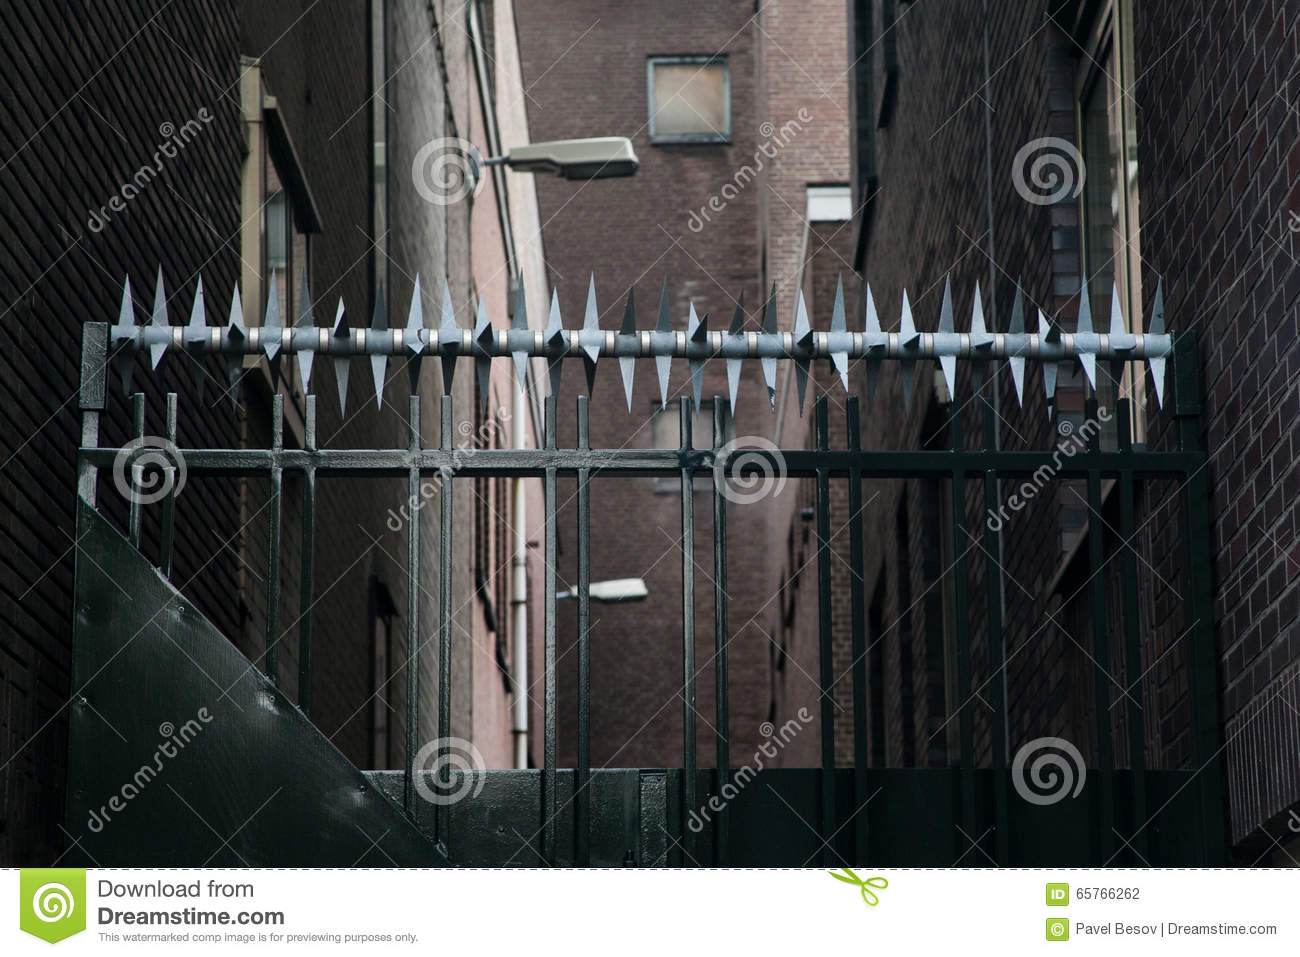 Private property, fence area. black metal gate with barbed protection. Aged paper textured background, retro colors